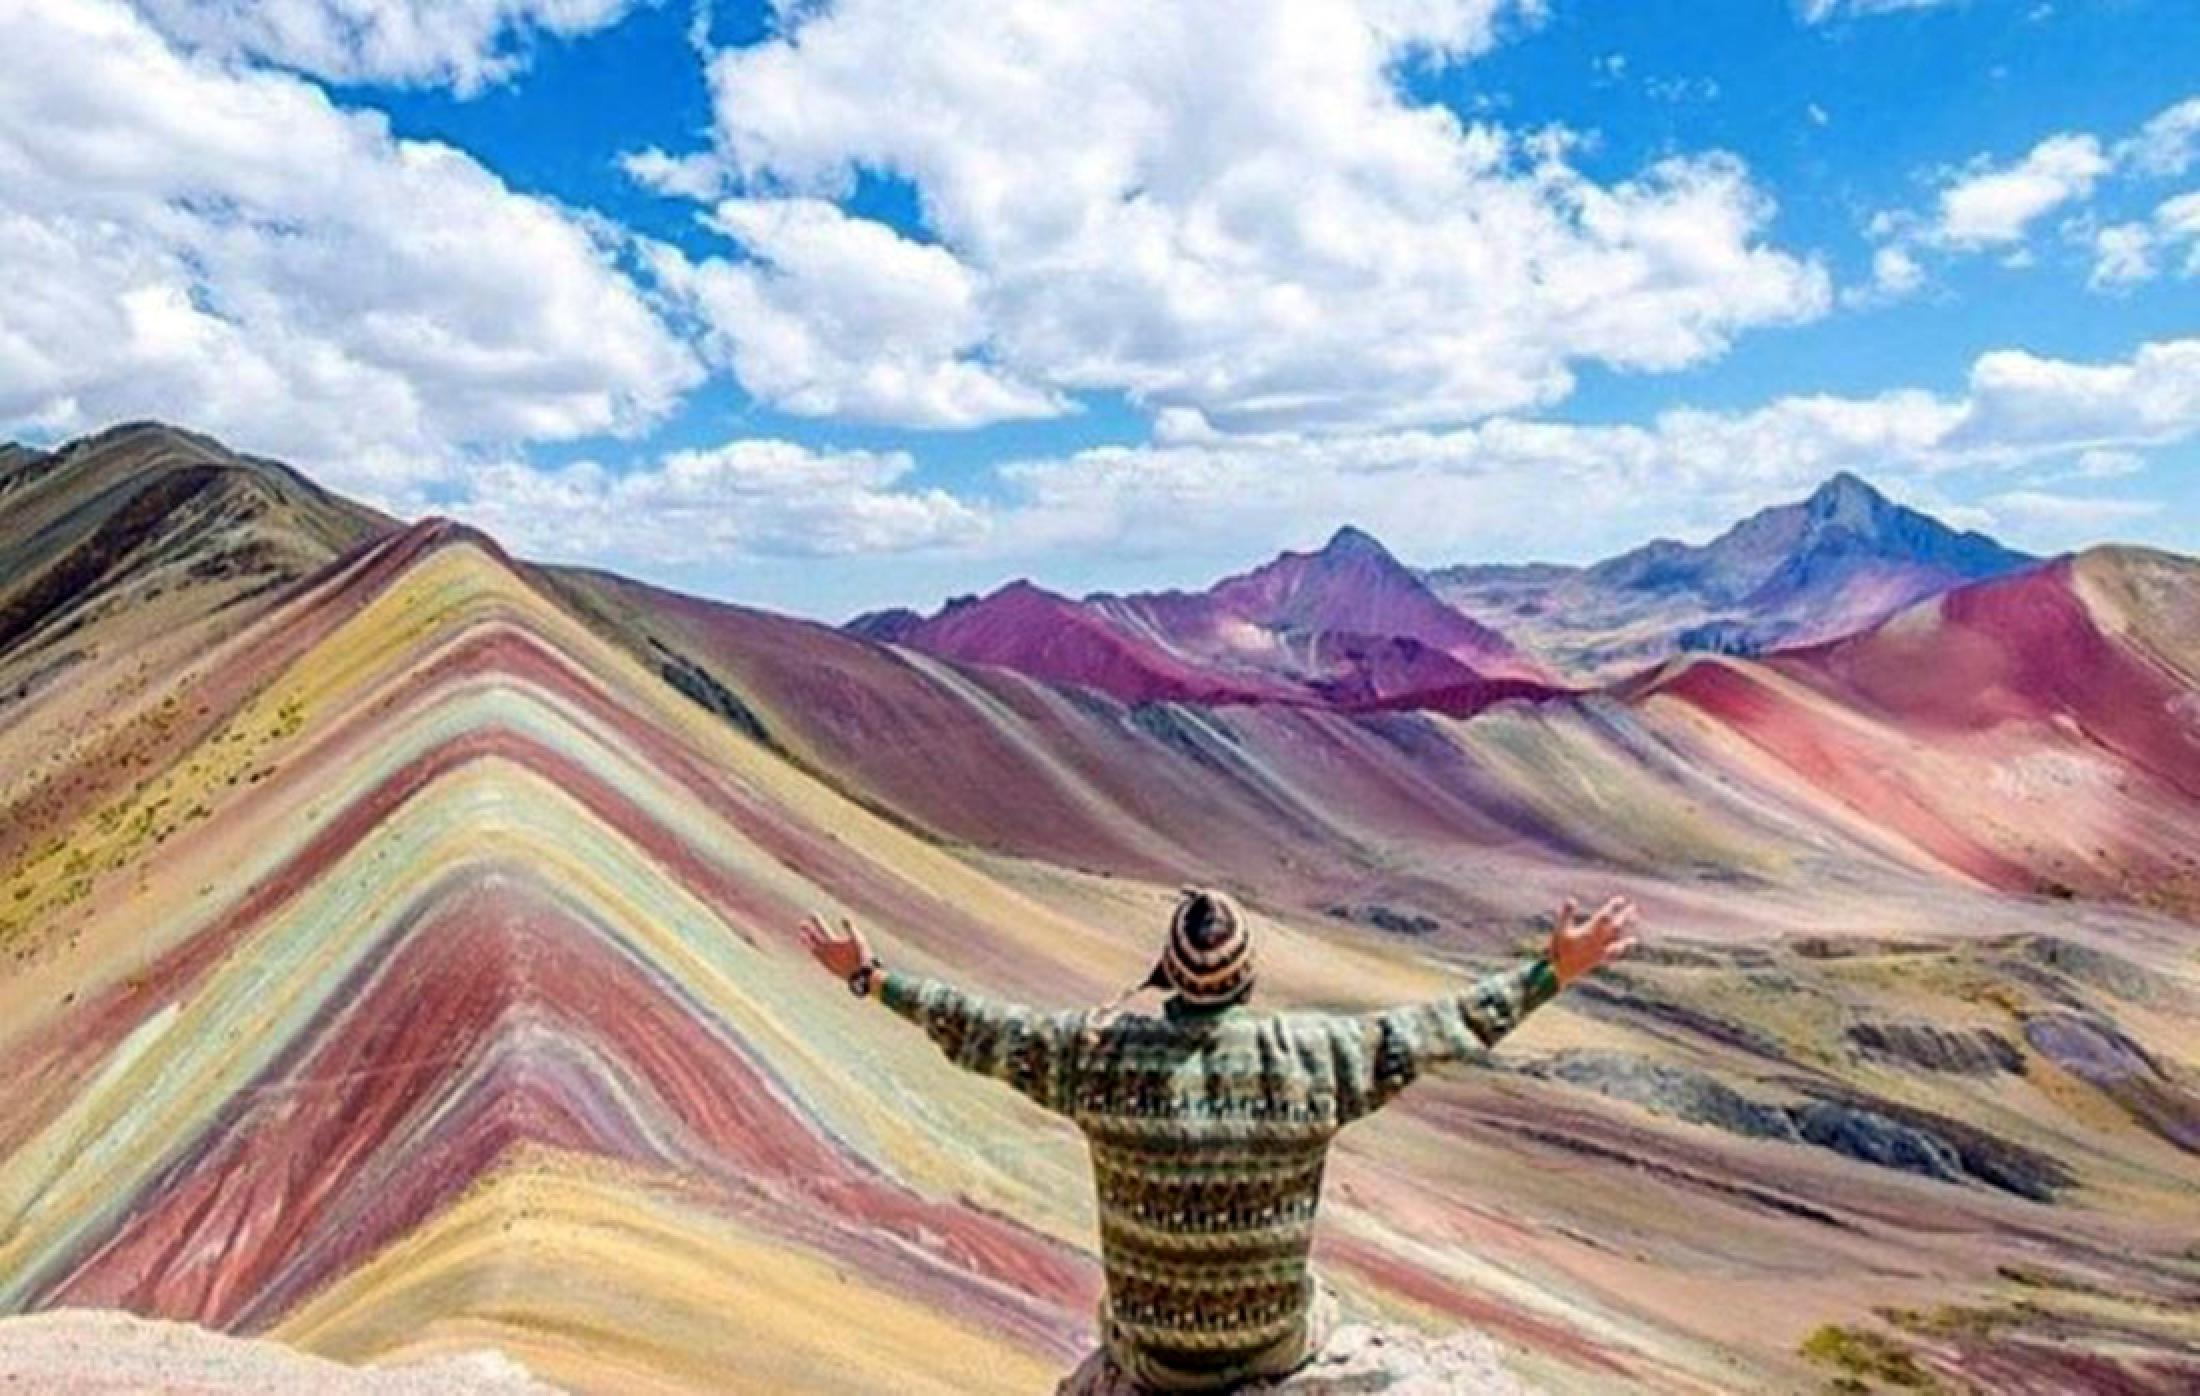 2-Day Rainbow Mountain Tour